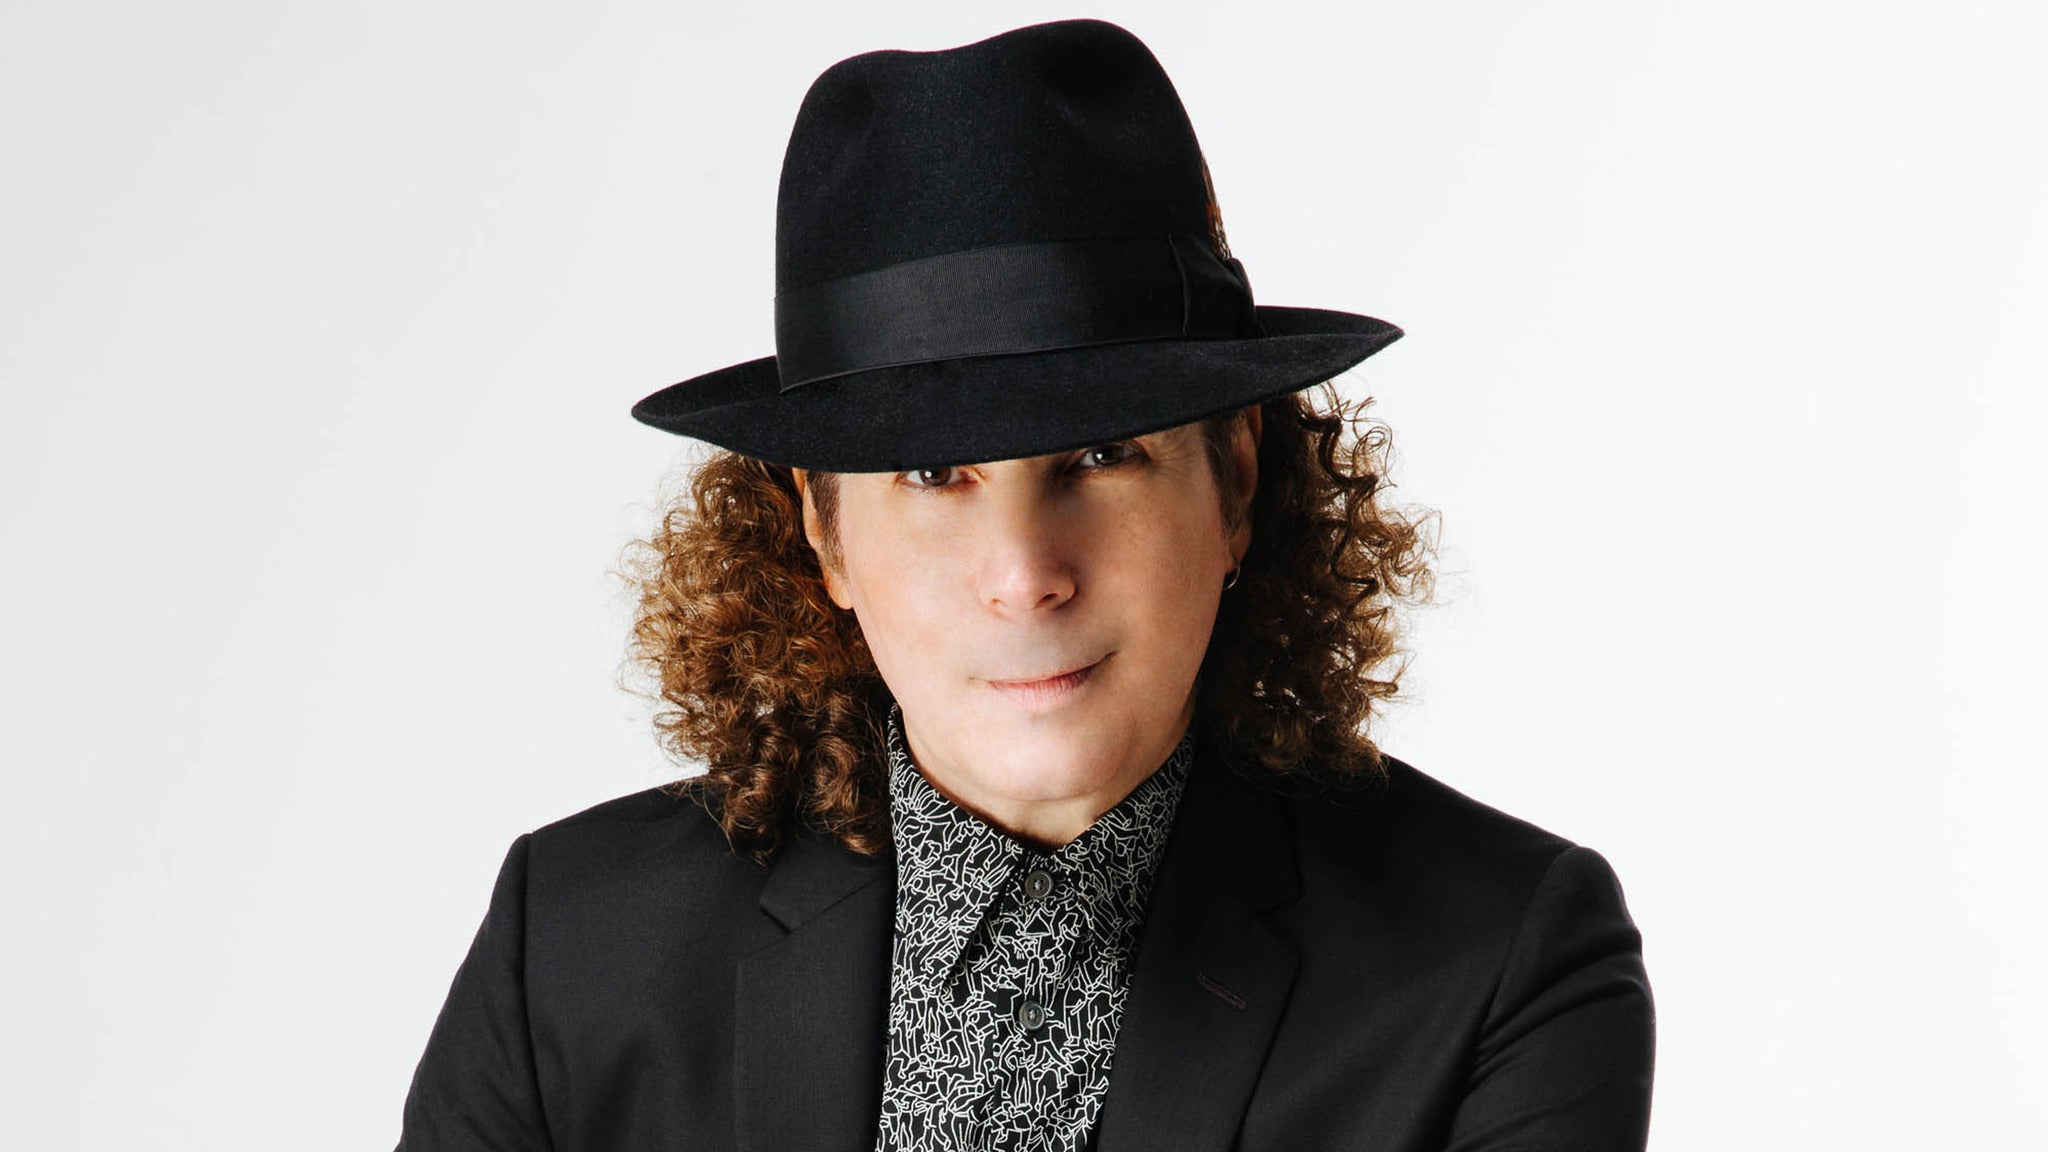 Boney James at Capitol Theatre - FL